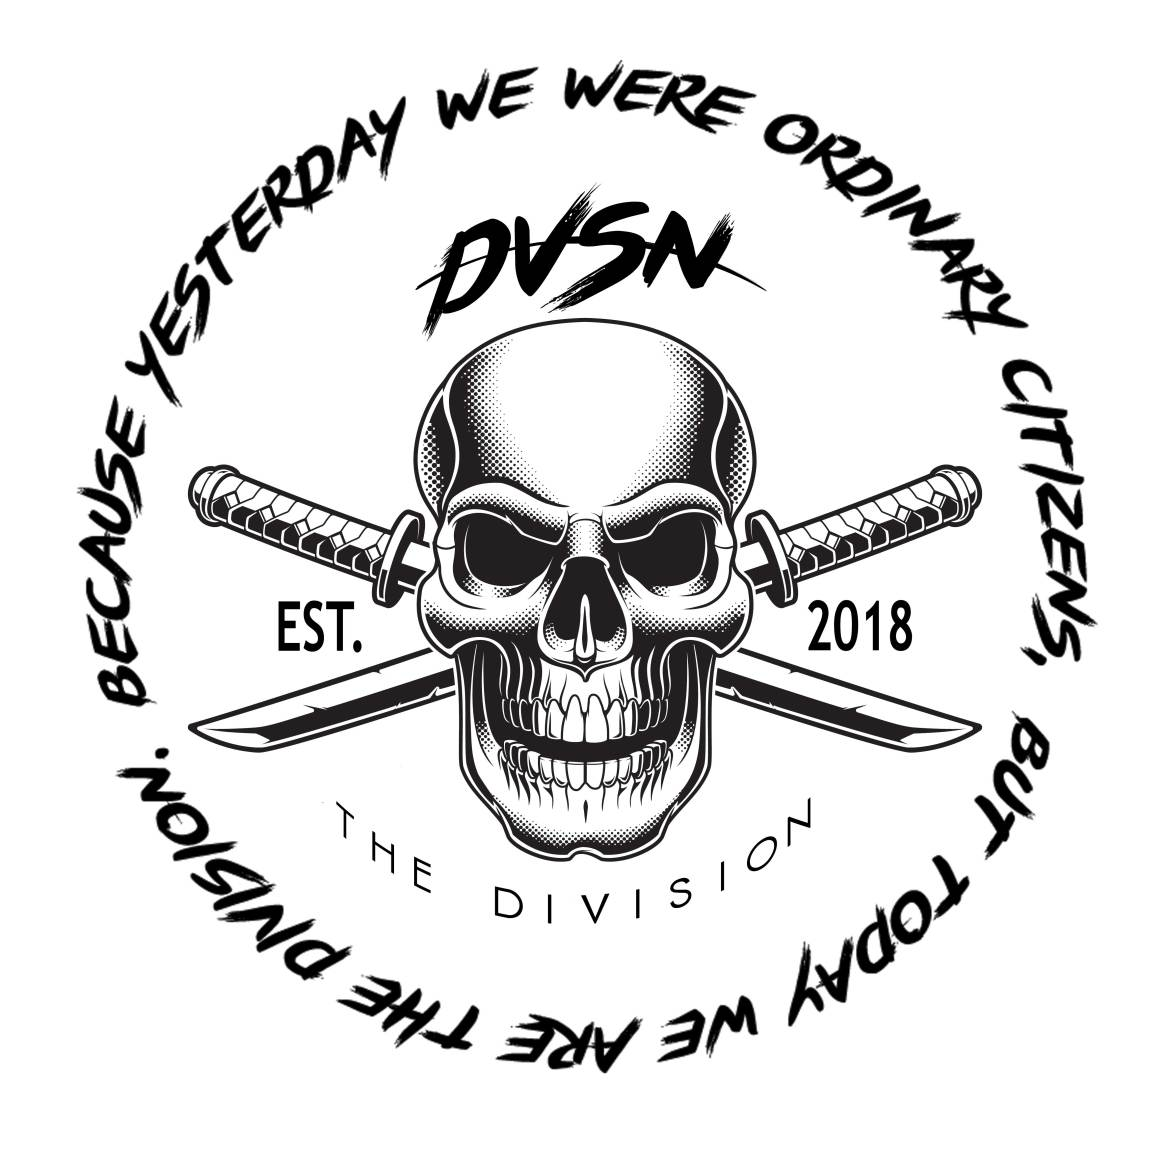 New-The-Divison-logo-on-the-back